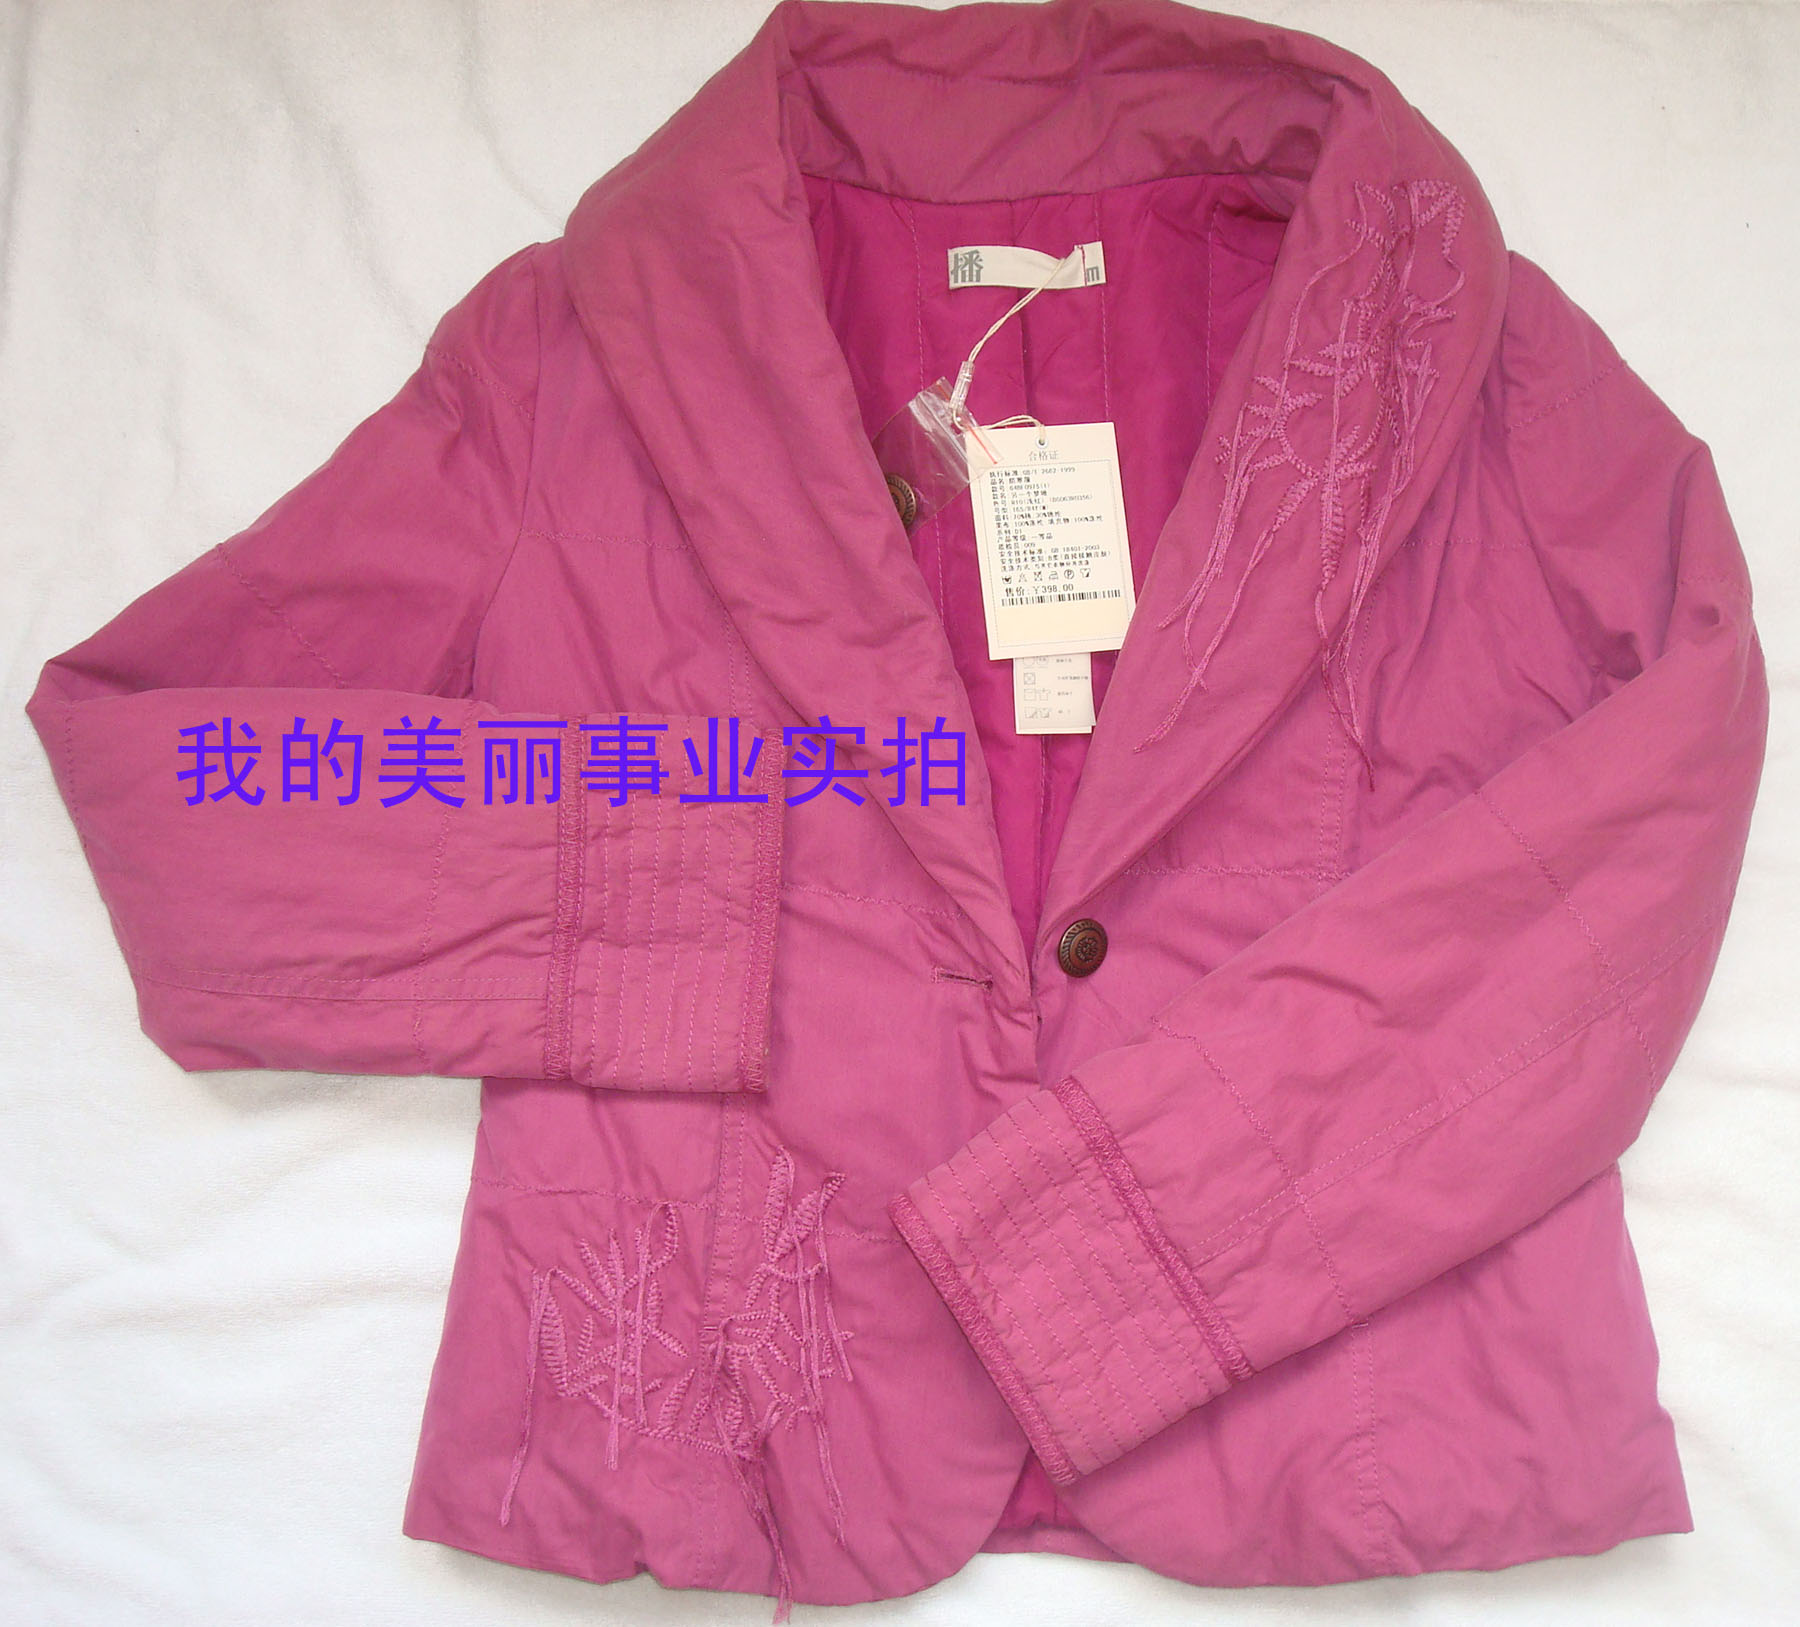 New counter authentic broadcast cold suit / another dream / suit / jacket 2.5% off